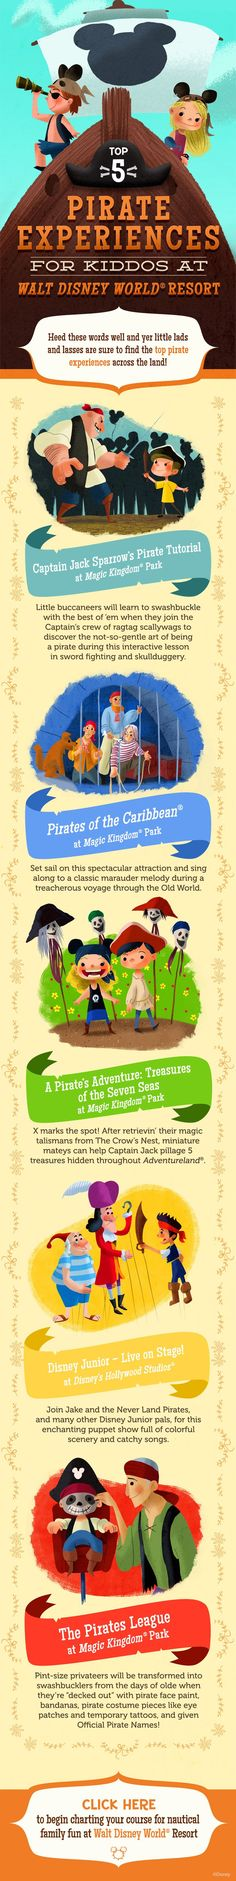 Top 5 Pirate Experiences for Little Ones at Walt Disney World!